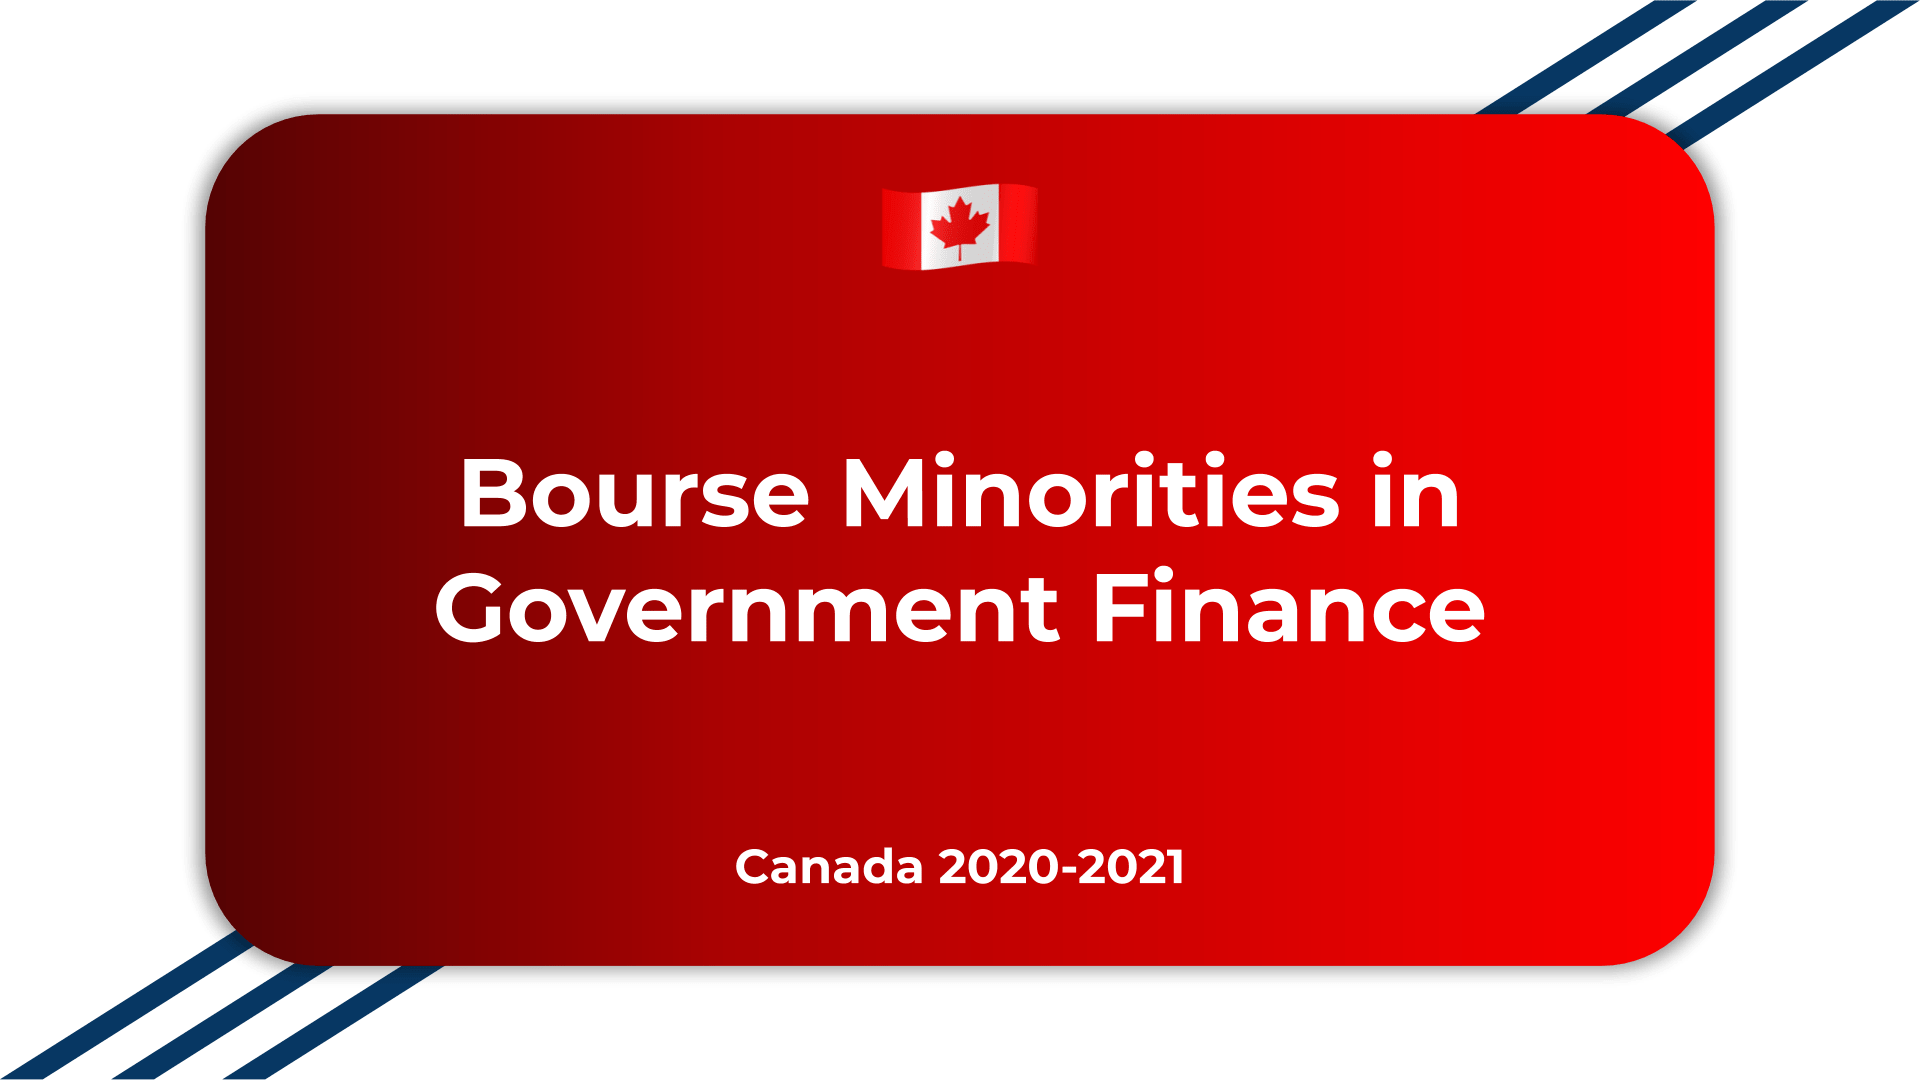 Bourse Minorities in Government Finance Canada